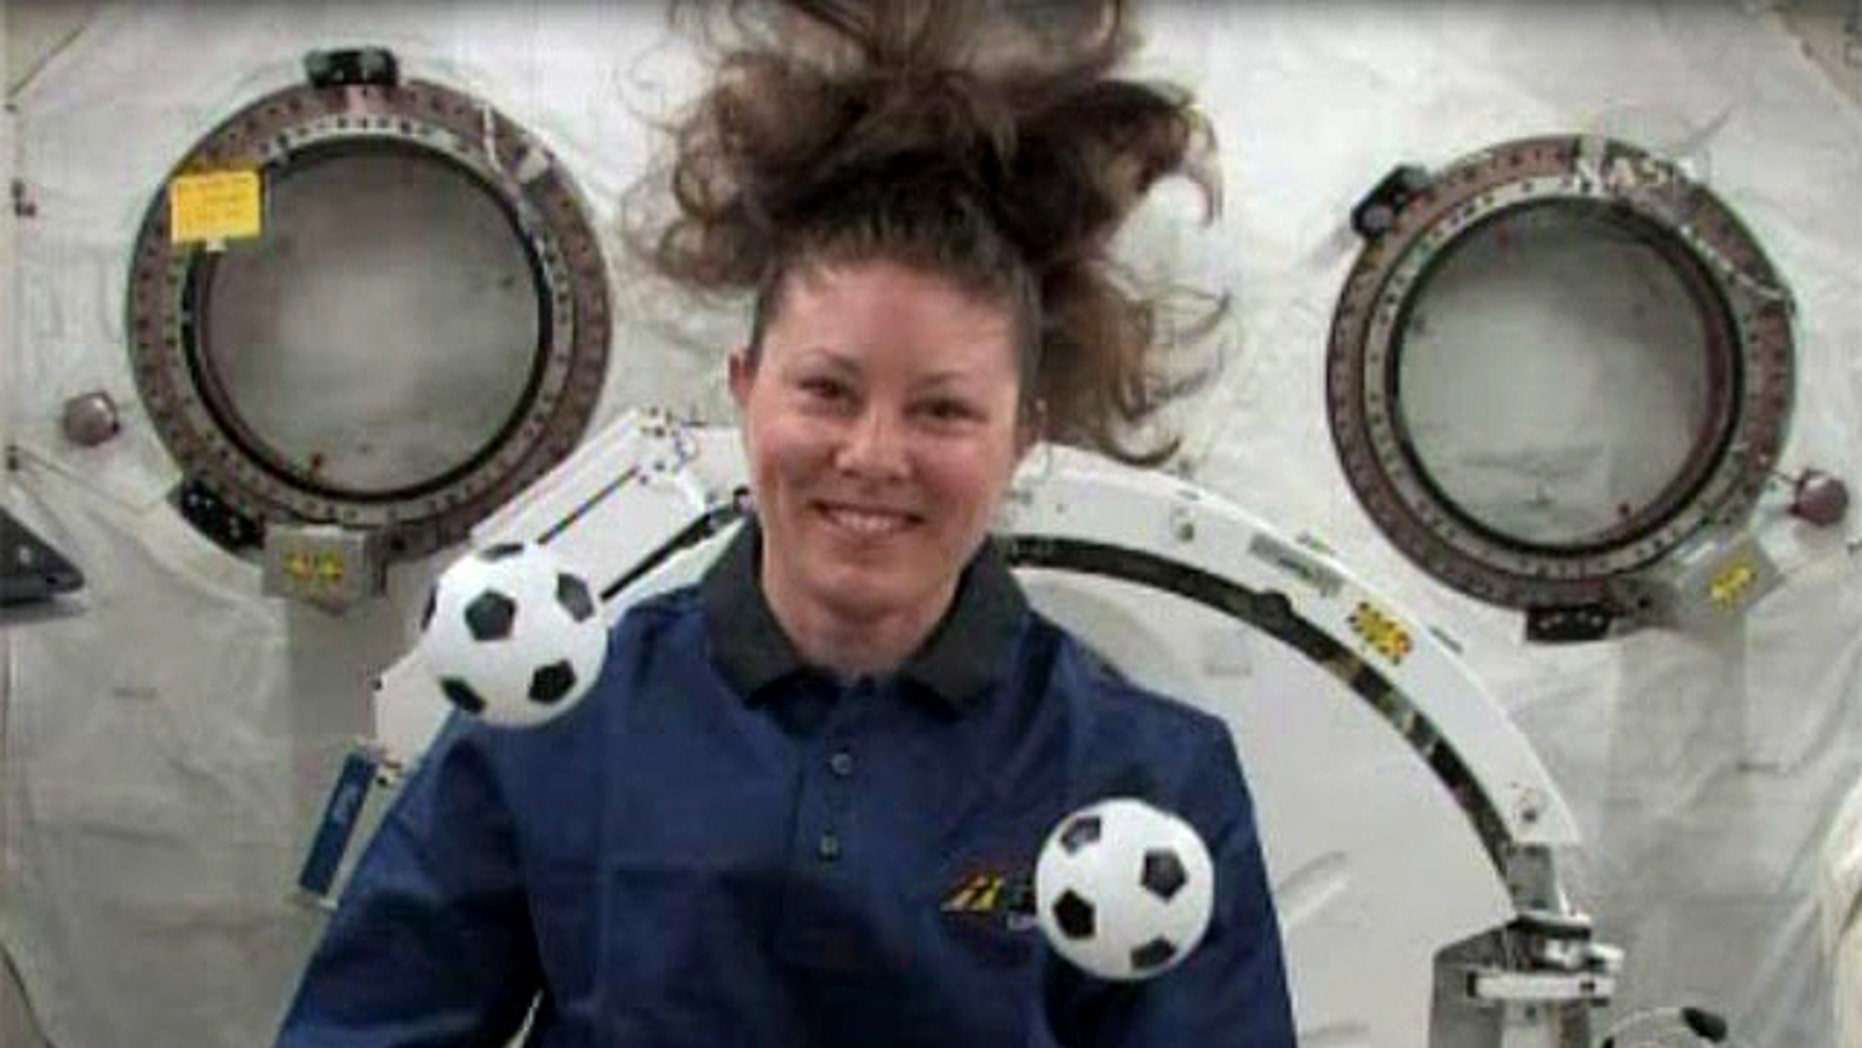 NASA astronaut Tracy Caldwell Dyson plays with mini soccer balls in the weightless environment of the International Space Station. She and her crewmates plan to cheer on the games at the 2010 World Cup international soccer tournament.